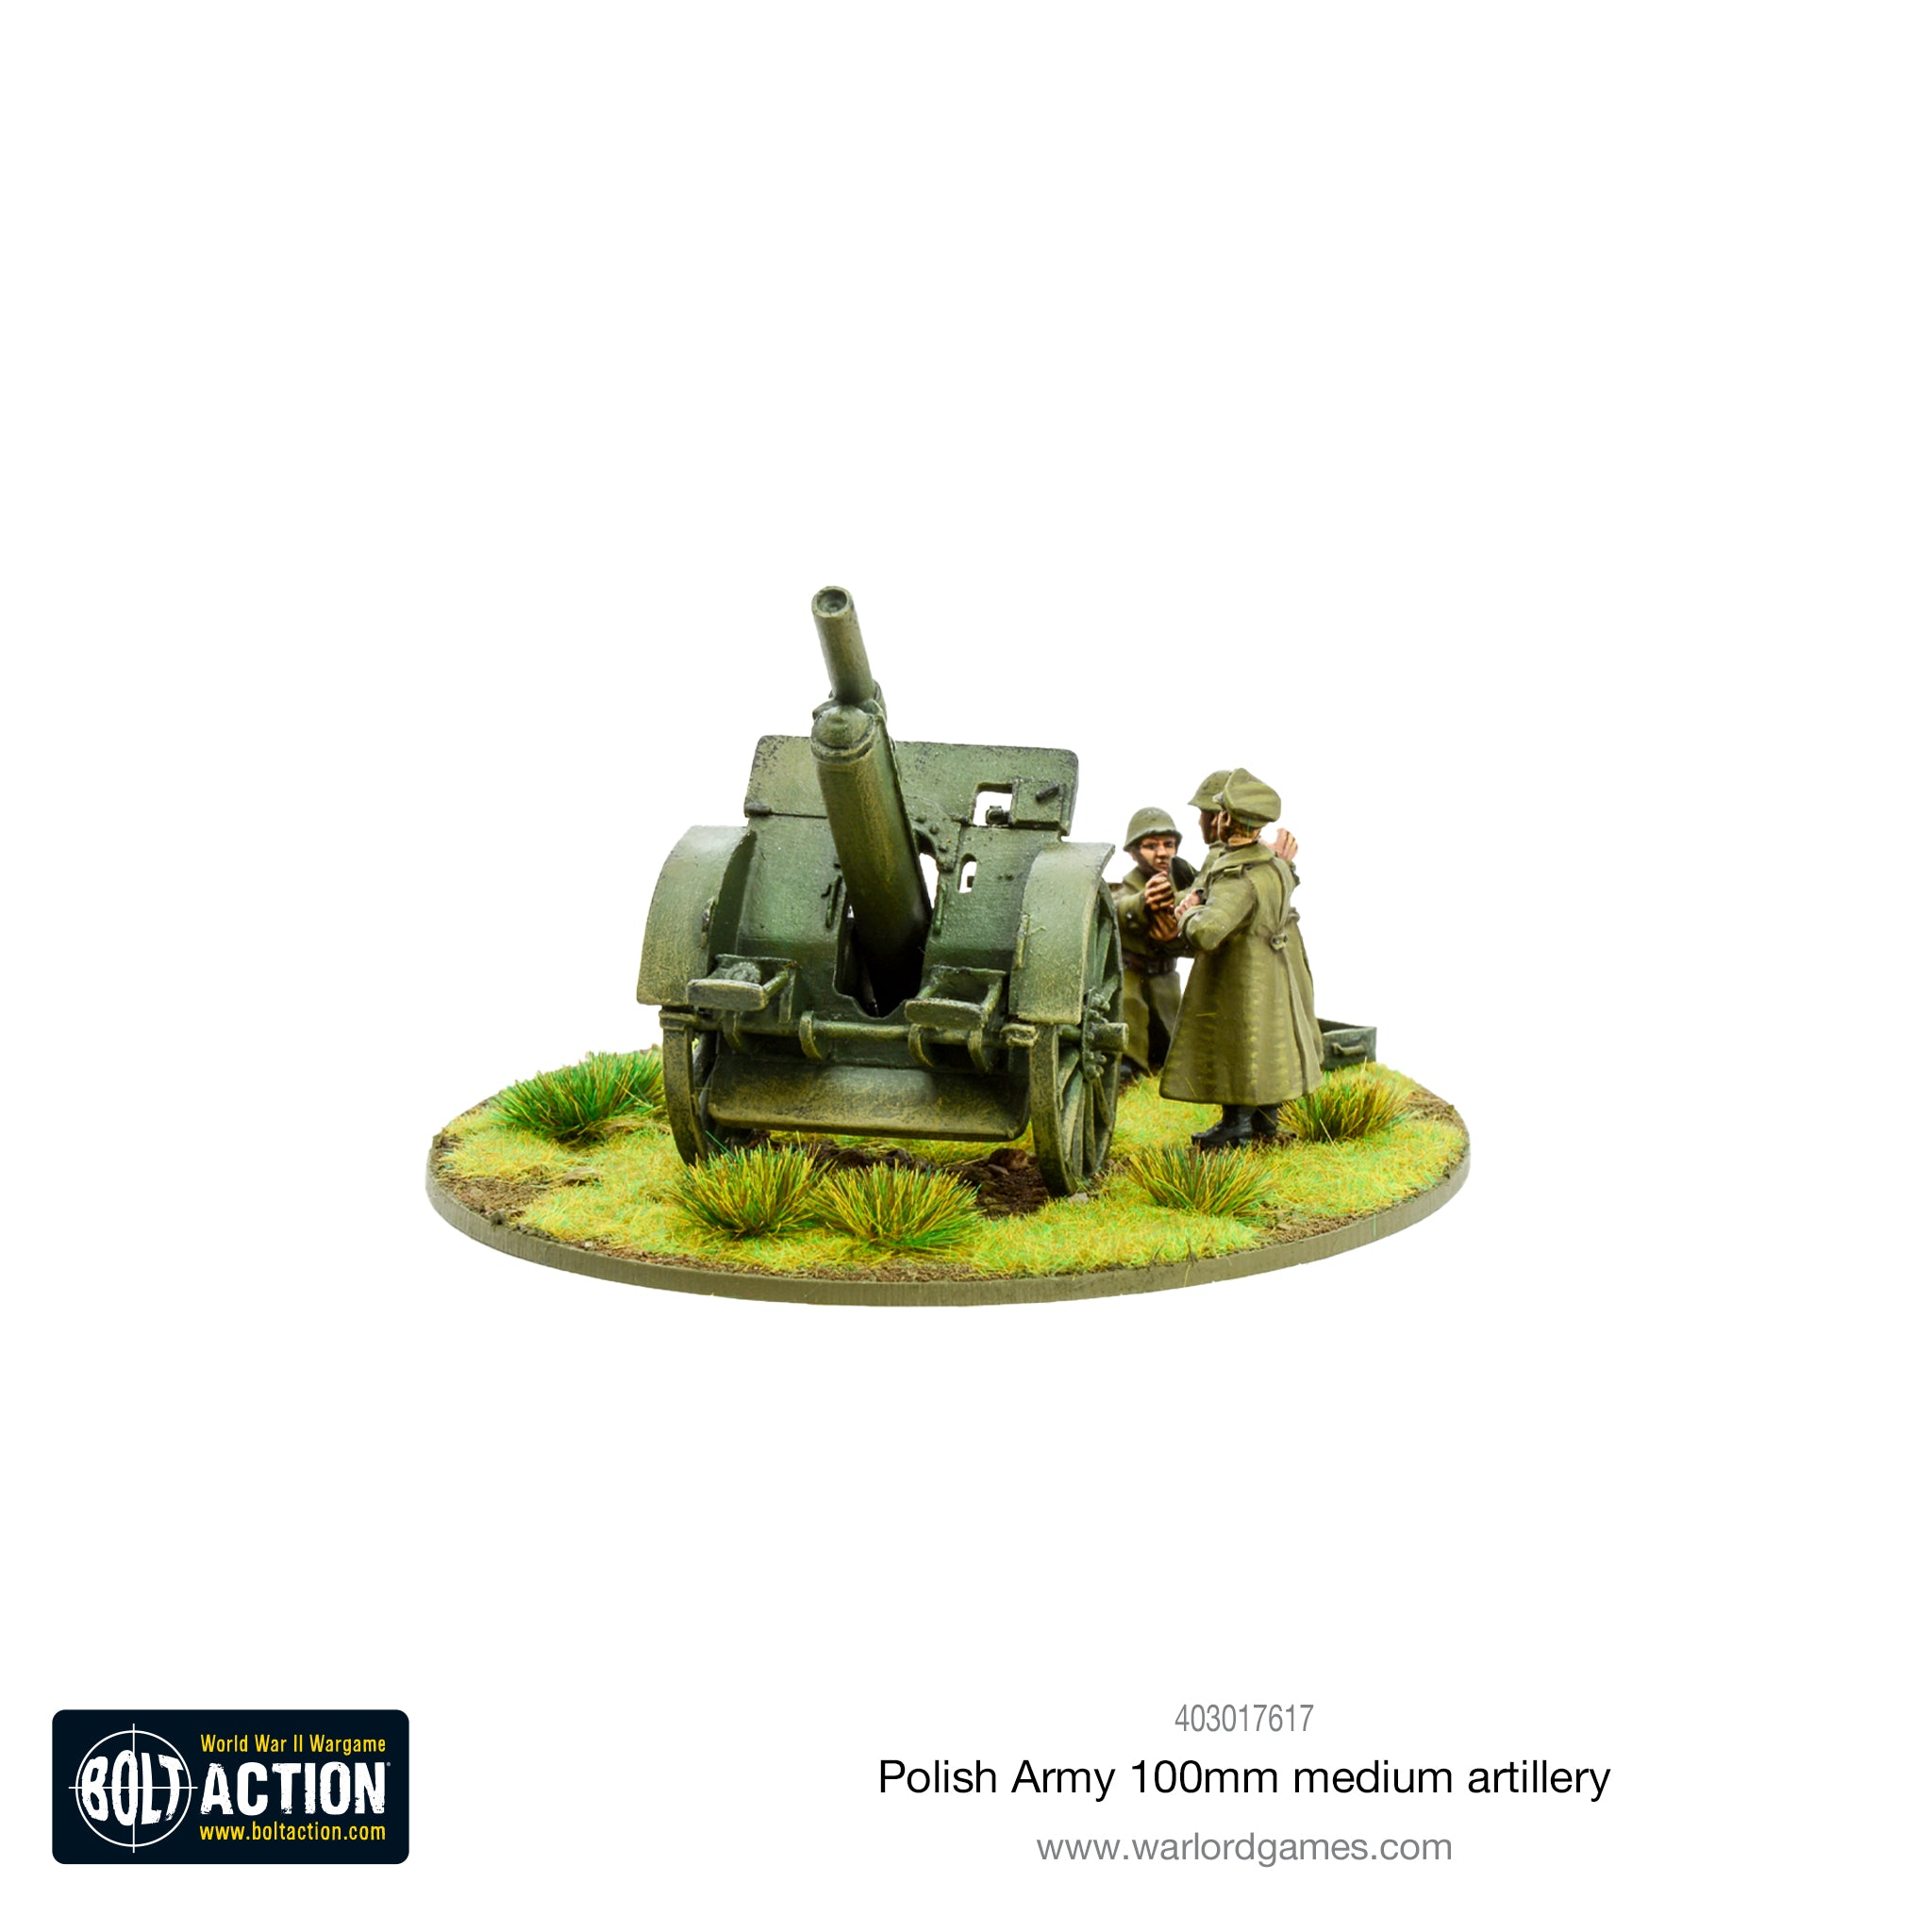 Polish Army 100mm medium artillery